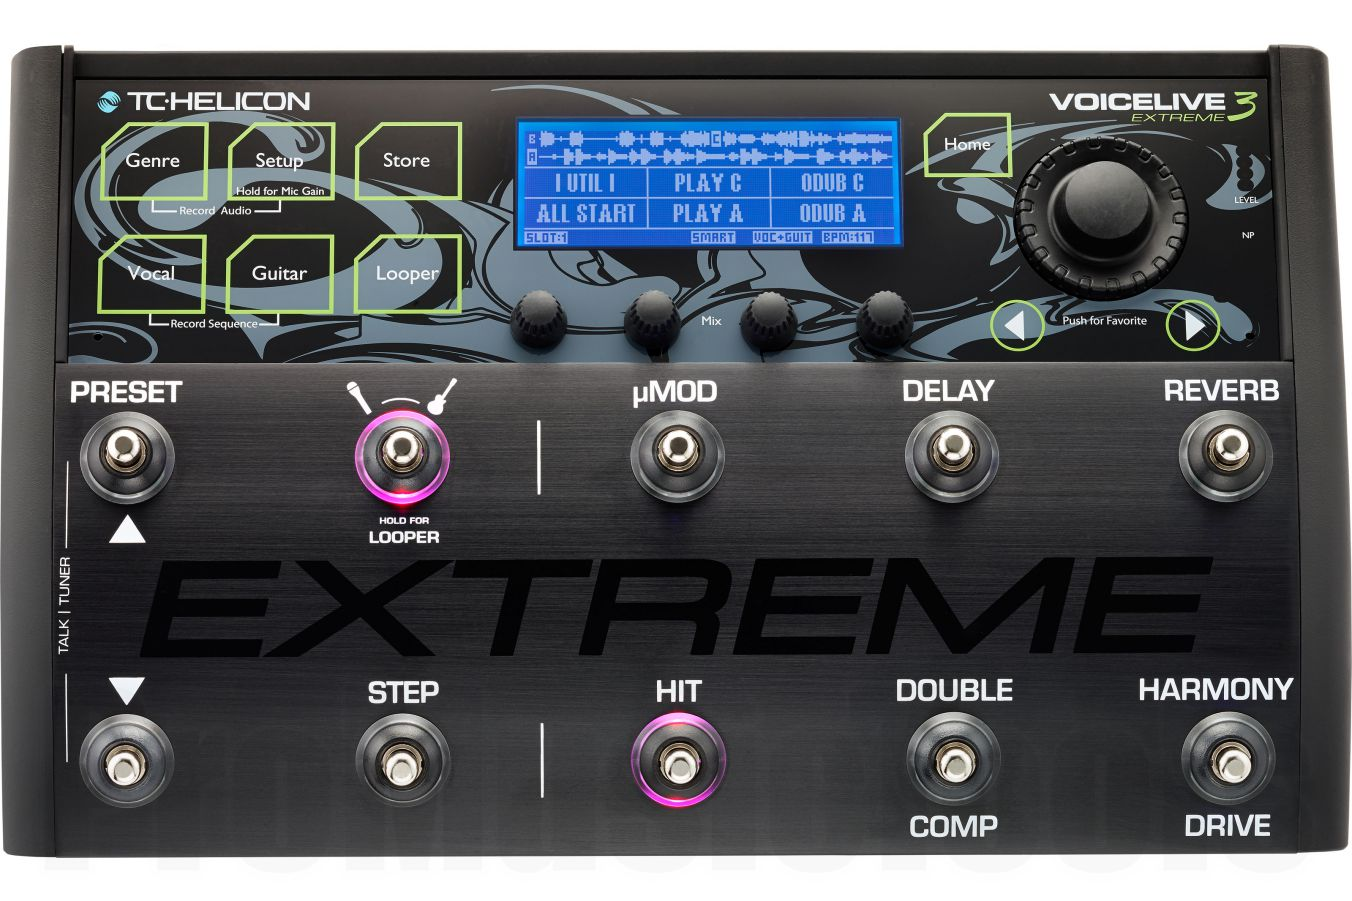 TC Helicon VoiceLive 3 Extreme - b-stock (1x opened box)